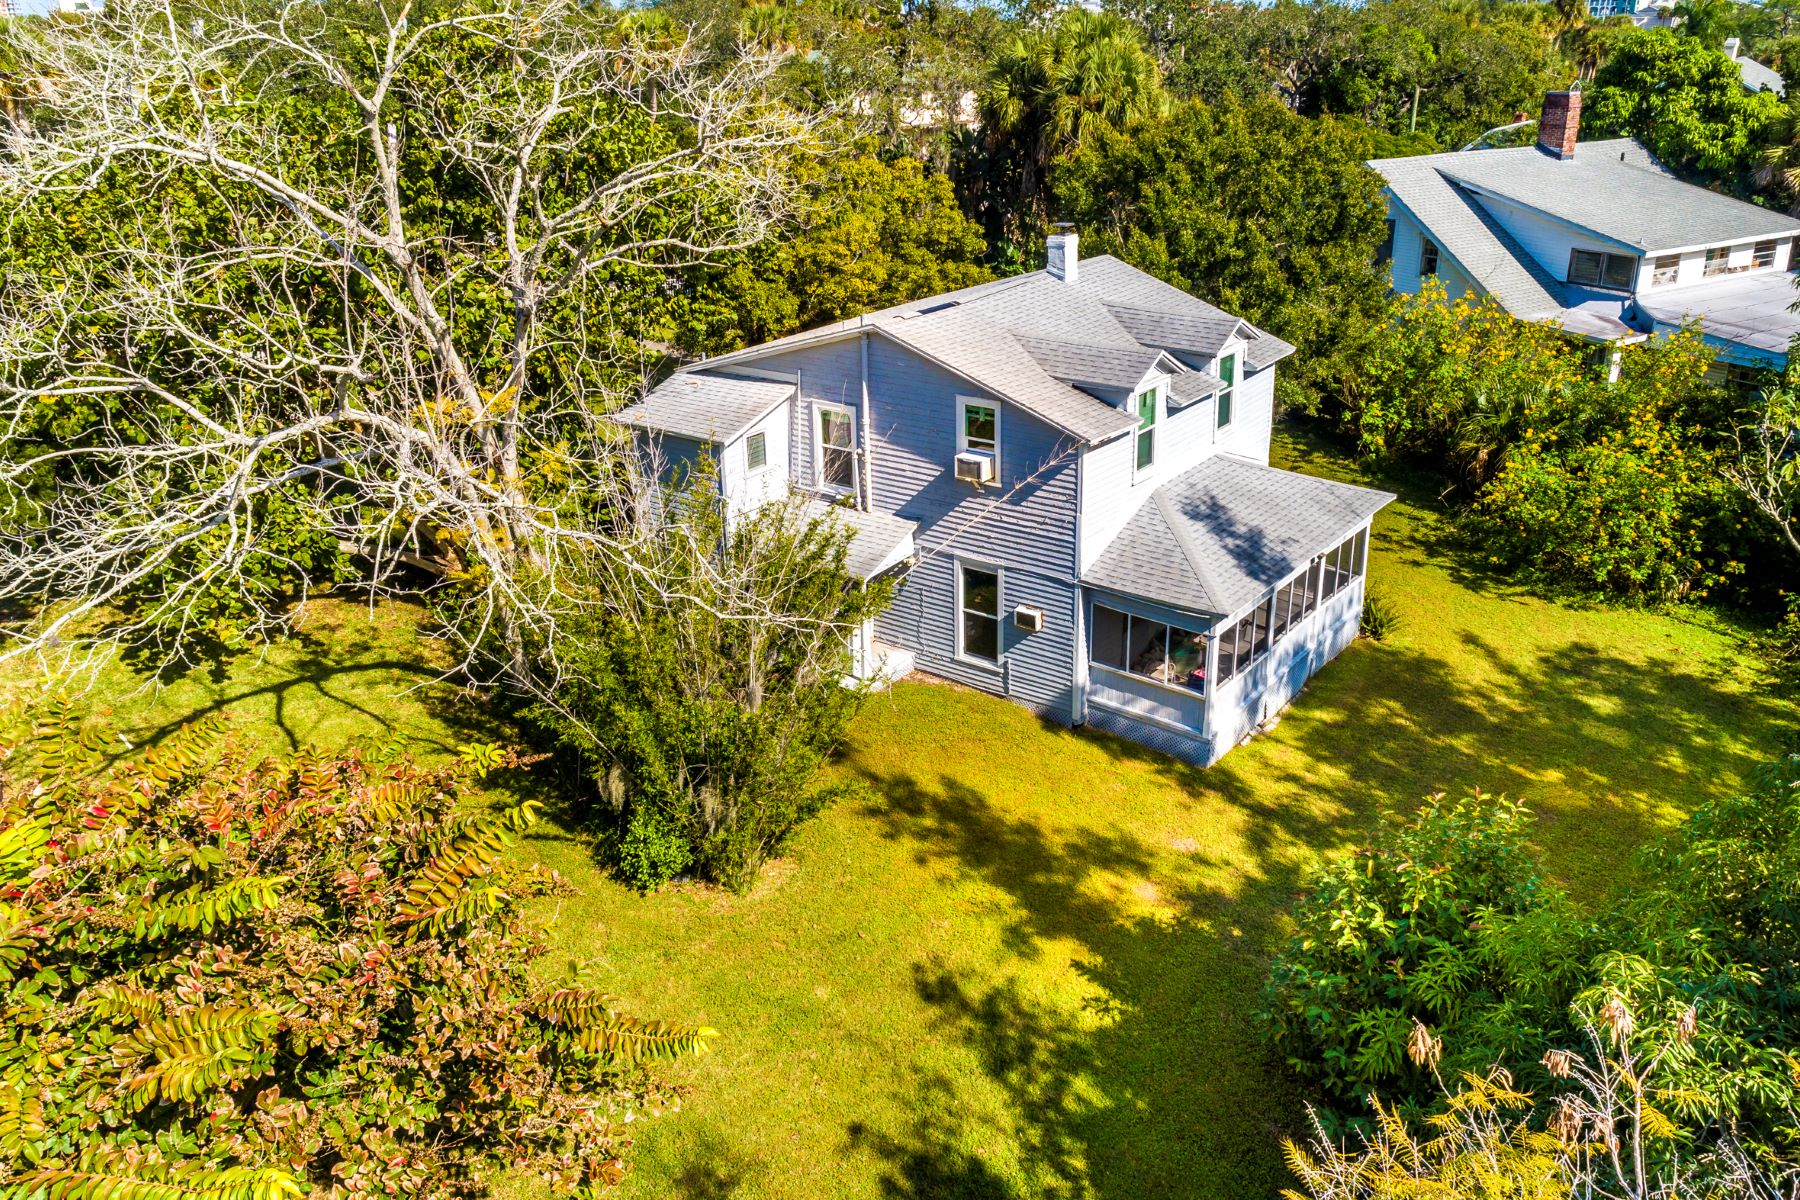 Additional photo for property listing at Two Historic Homes Being Sold Together! 819 & 823 E Melbourne Avenue Melbourne, Florida 32901 United States